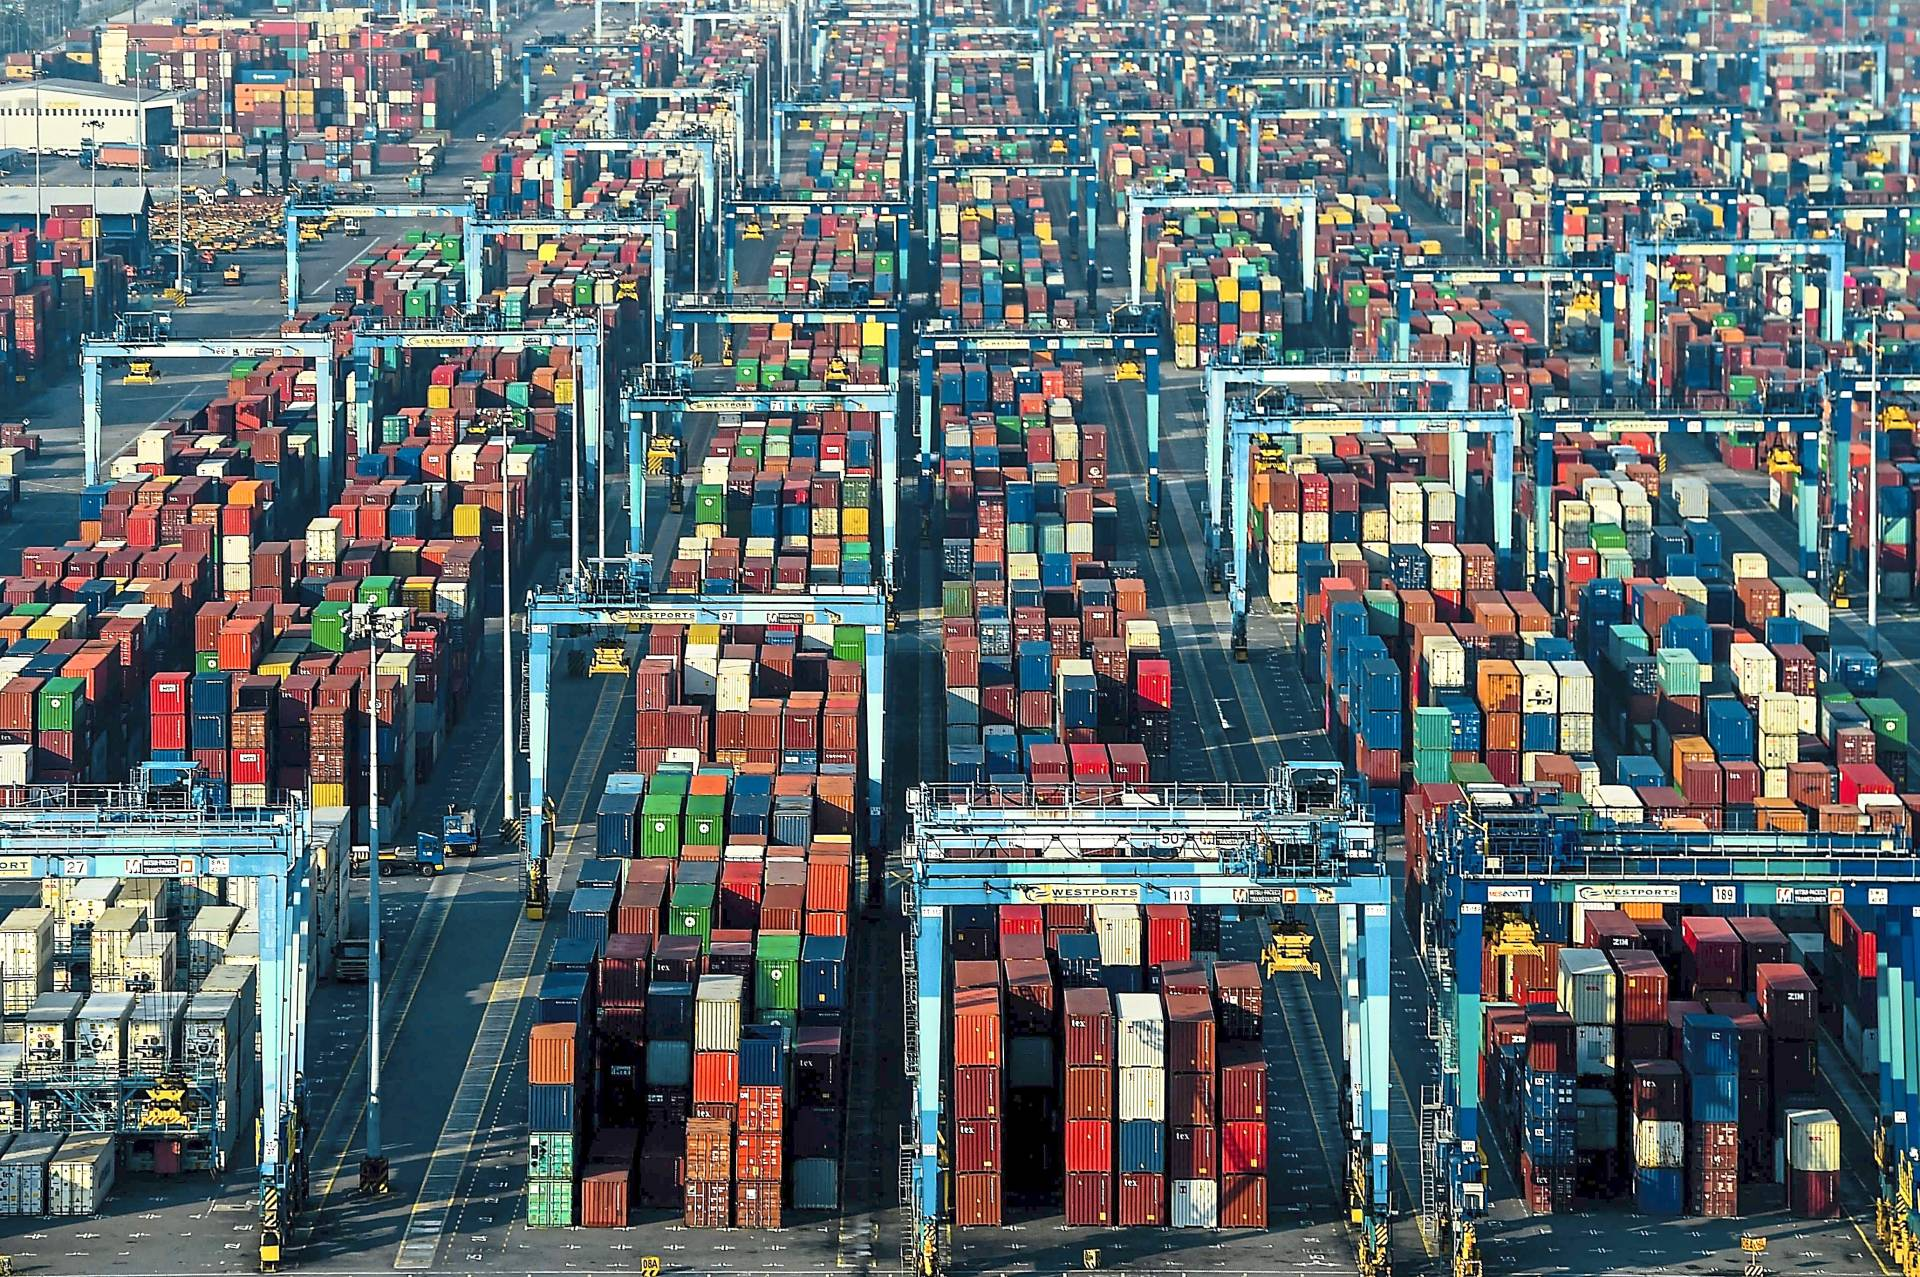 Westports to undertake provision in 4Q for vessel incident